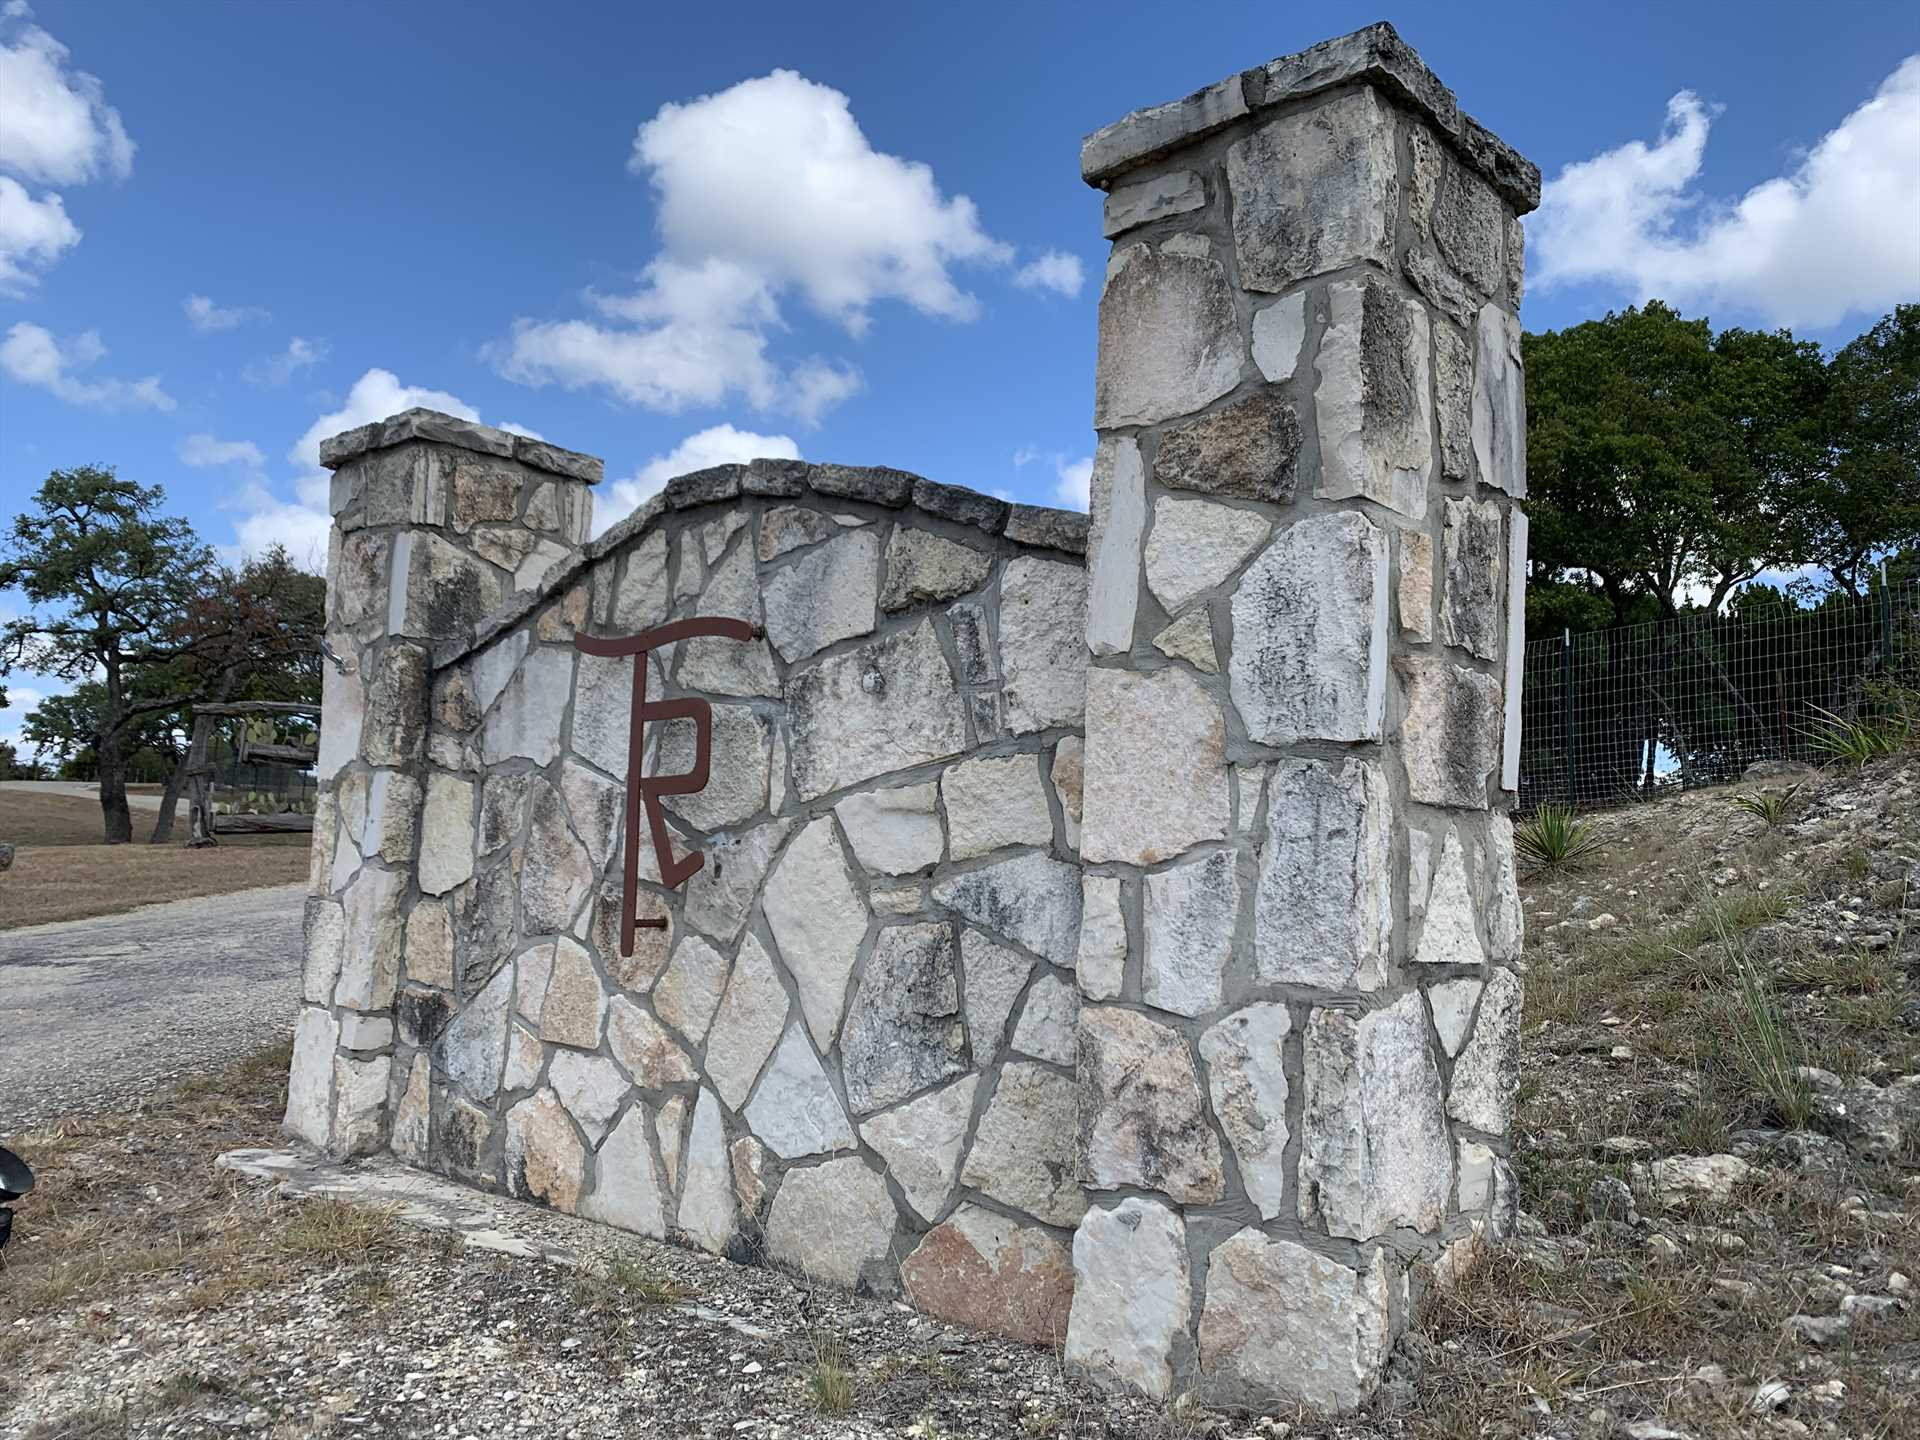 The Tabasco Ranch gate stands out alongside the road, and your visit here will stand out, too!